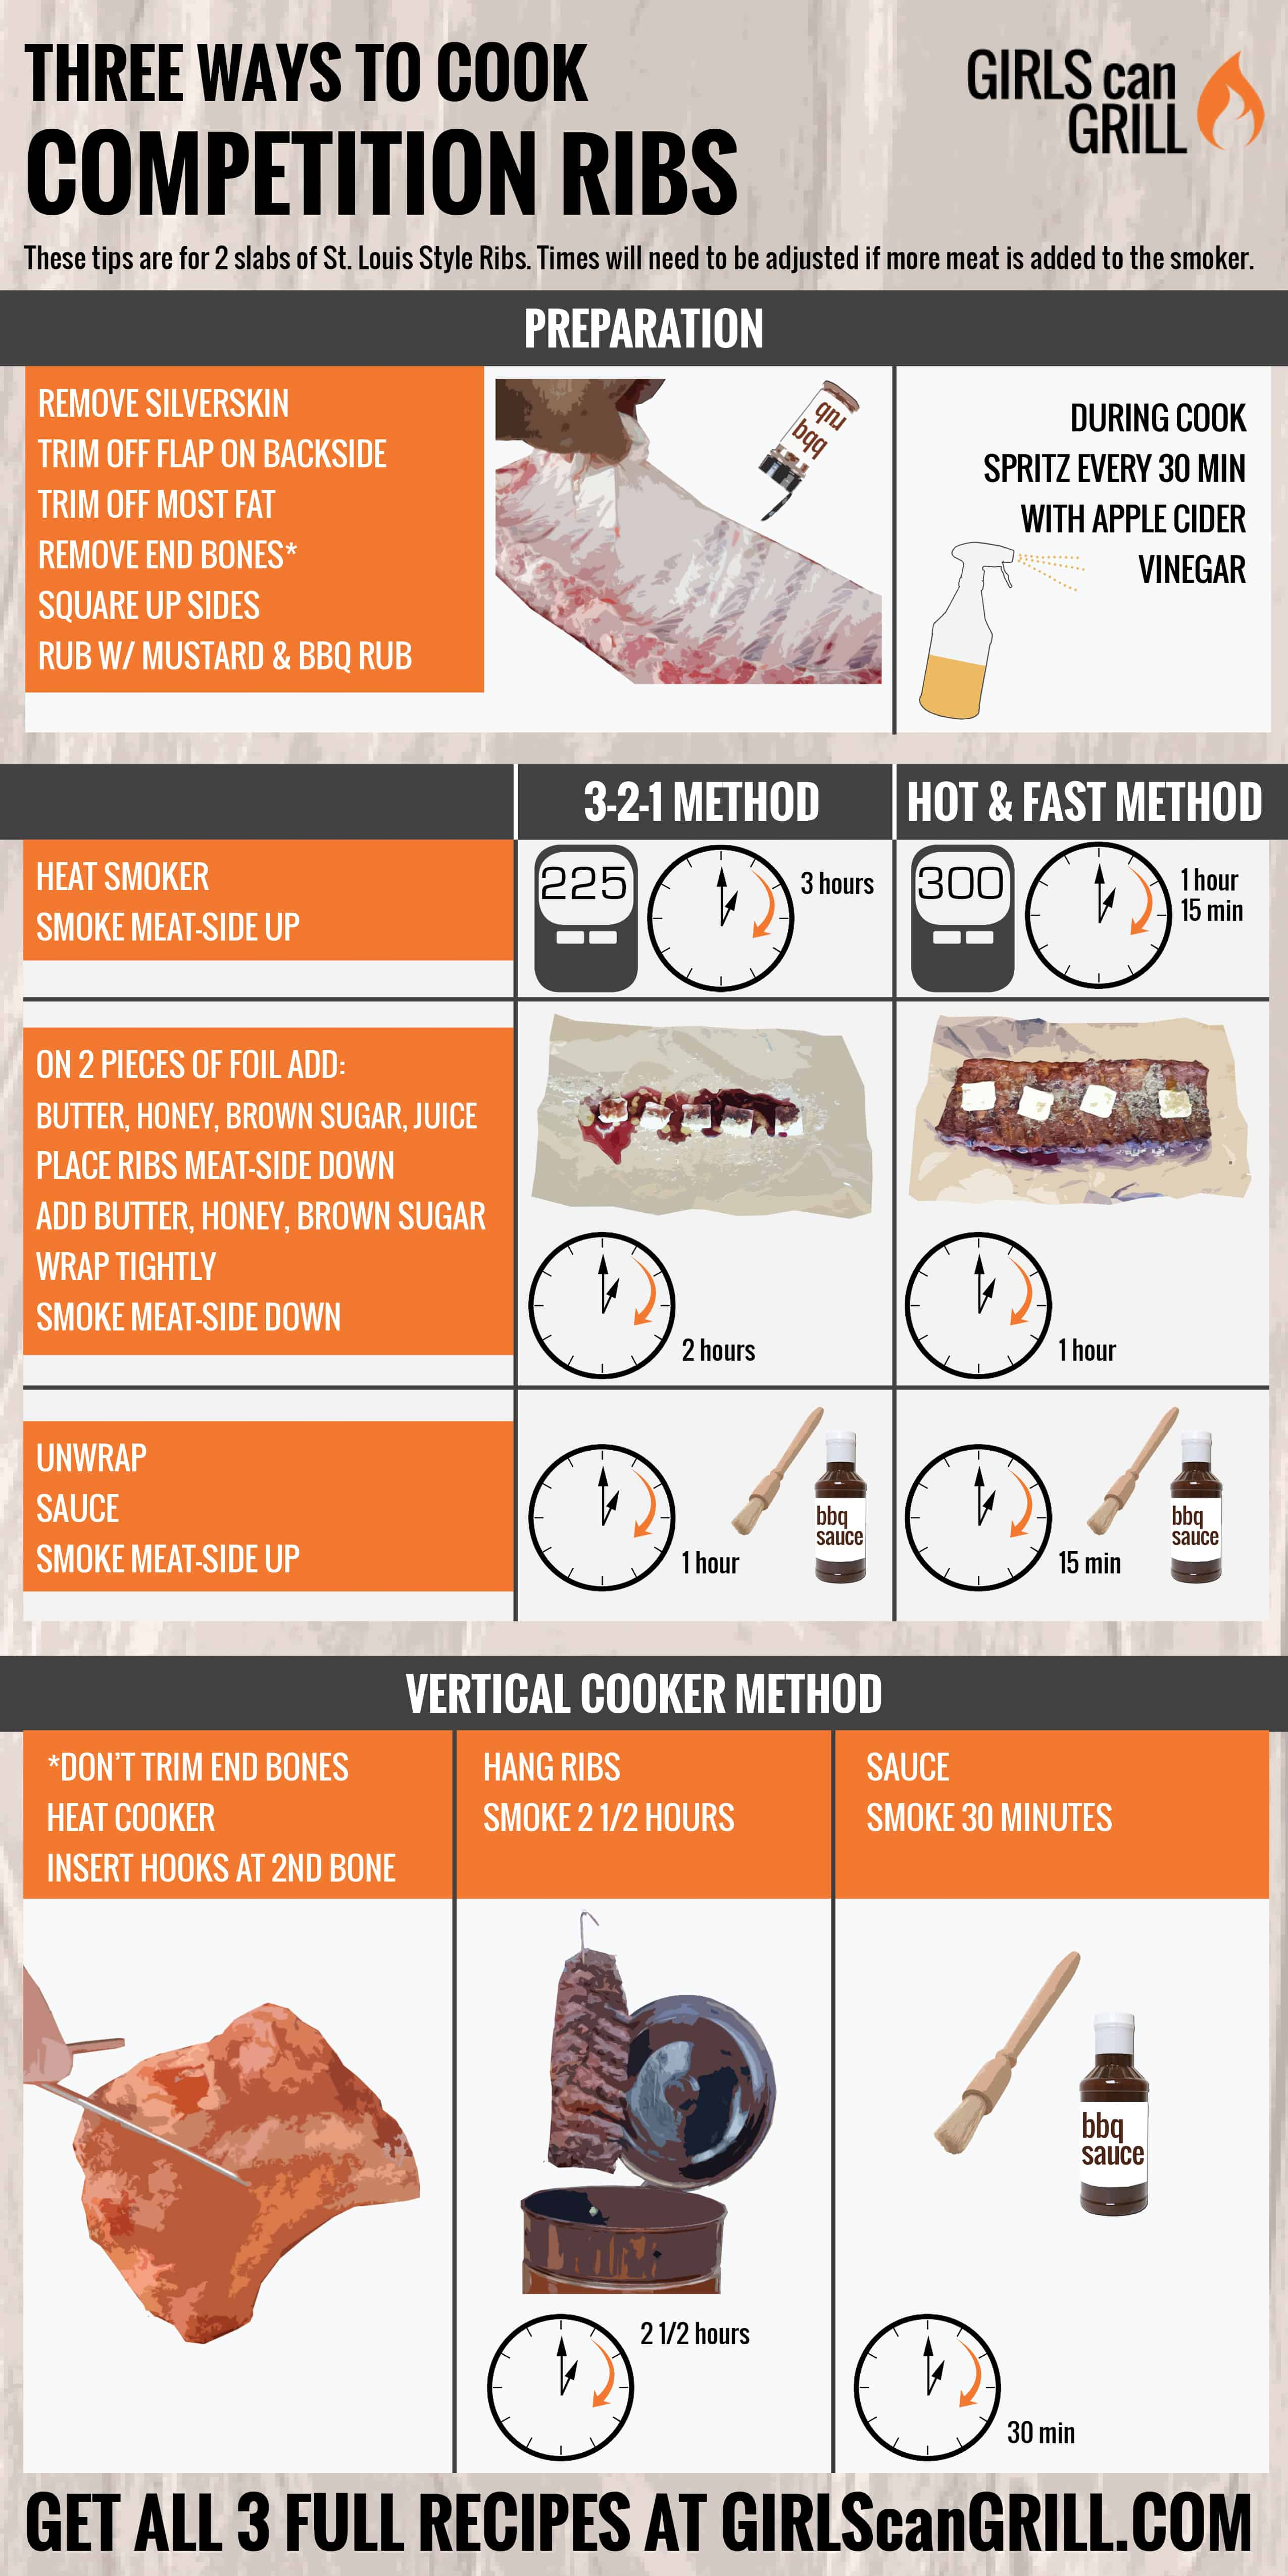 Infographic: 3 ways to cook competition ribs